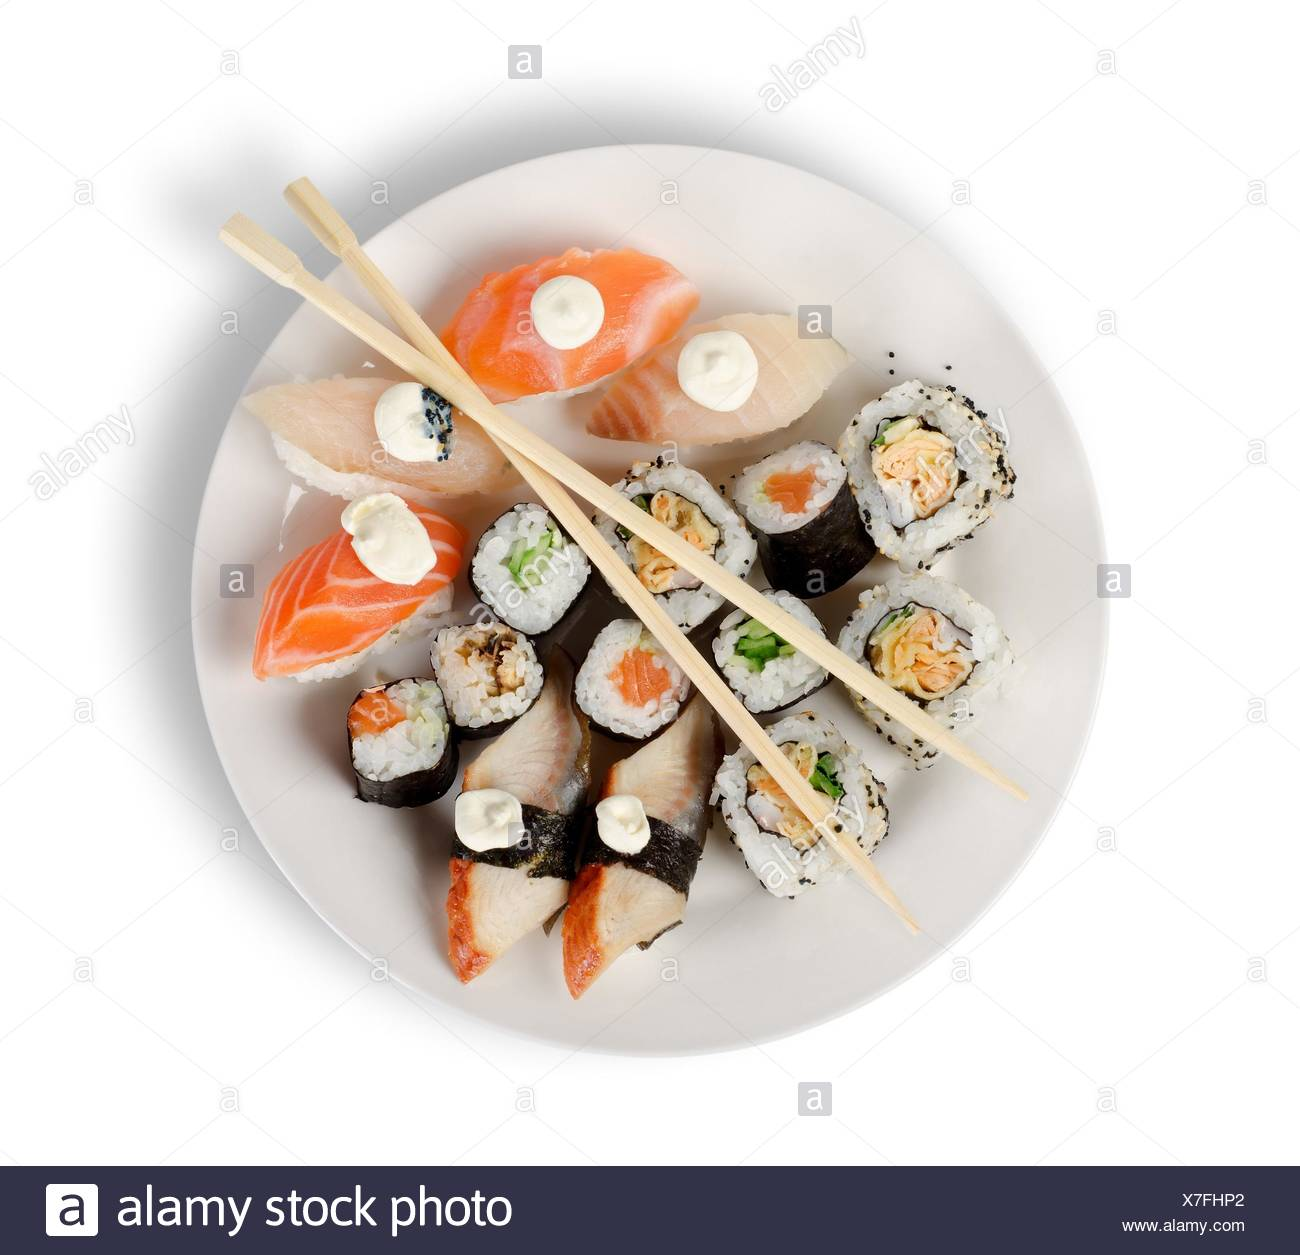 Sushi and rolls in a plate with sticks isolated on a white background. Clipping path. - Stock Image